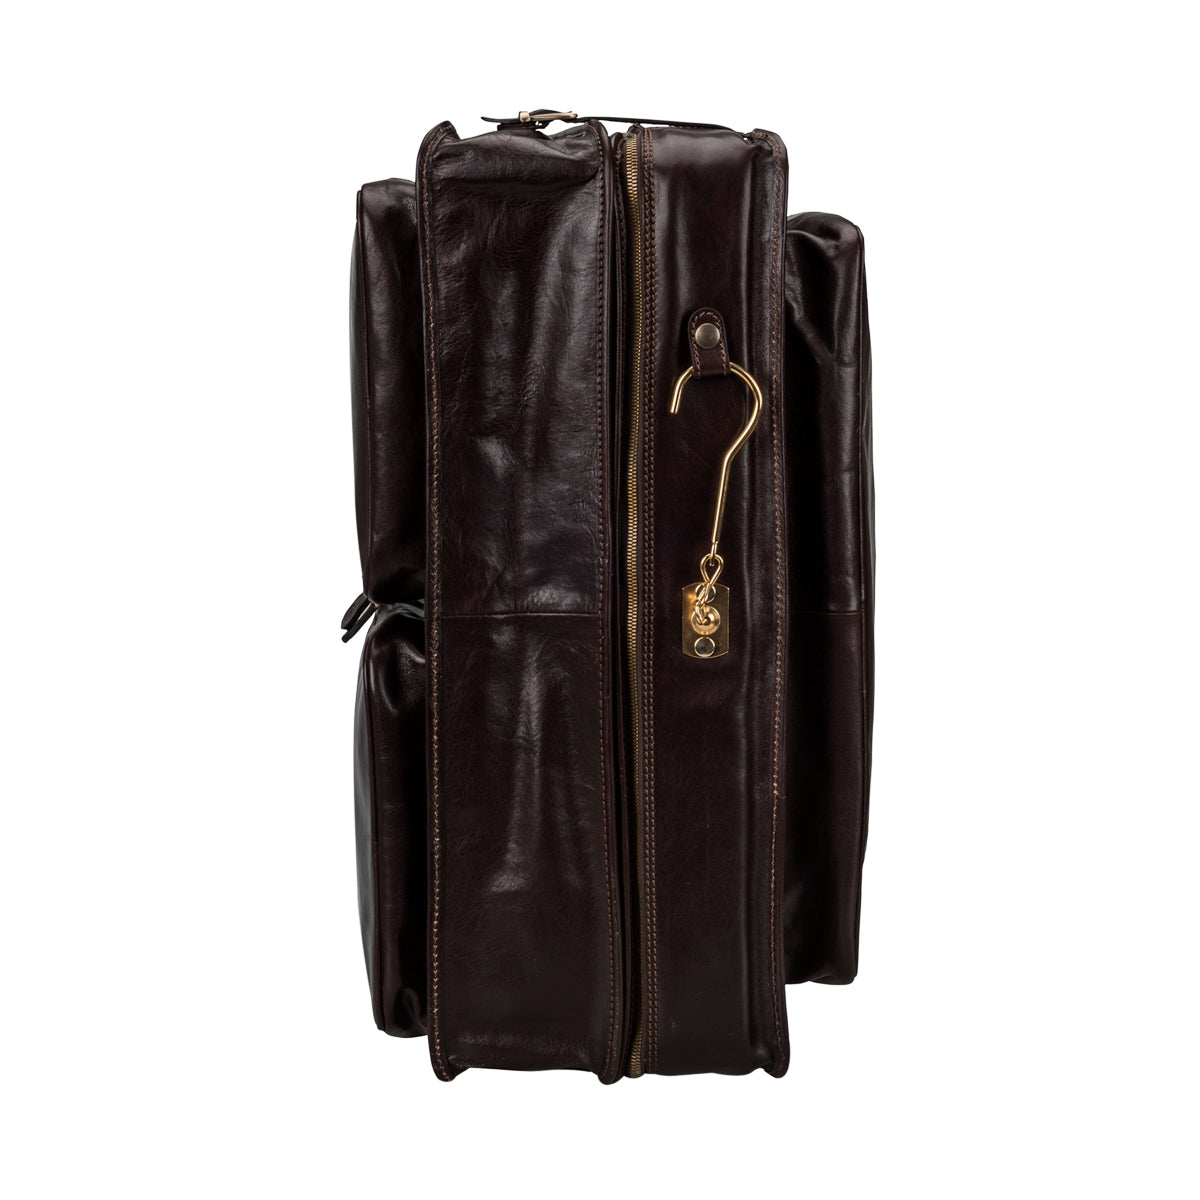 Image 4 of the 'Rovello' Dark Chocolate Veg-Tanned Leather Suit Carrier